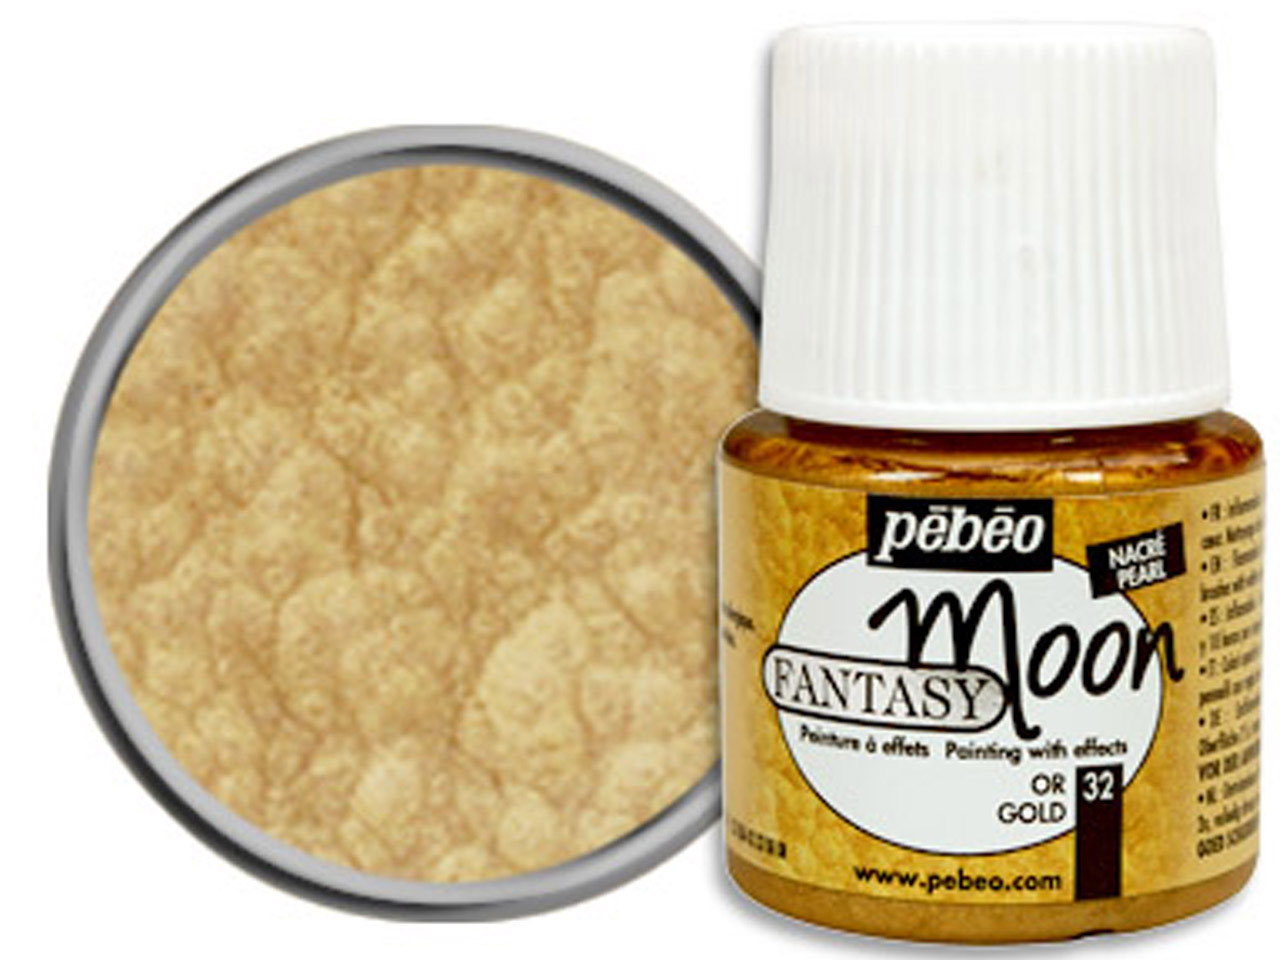 Pebeo Fantasy Moon, Gold, 45ml